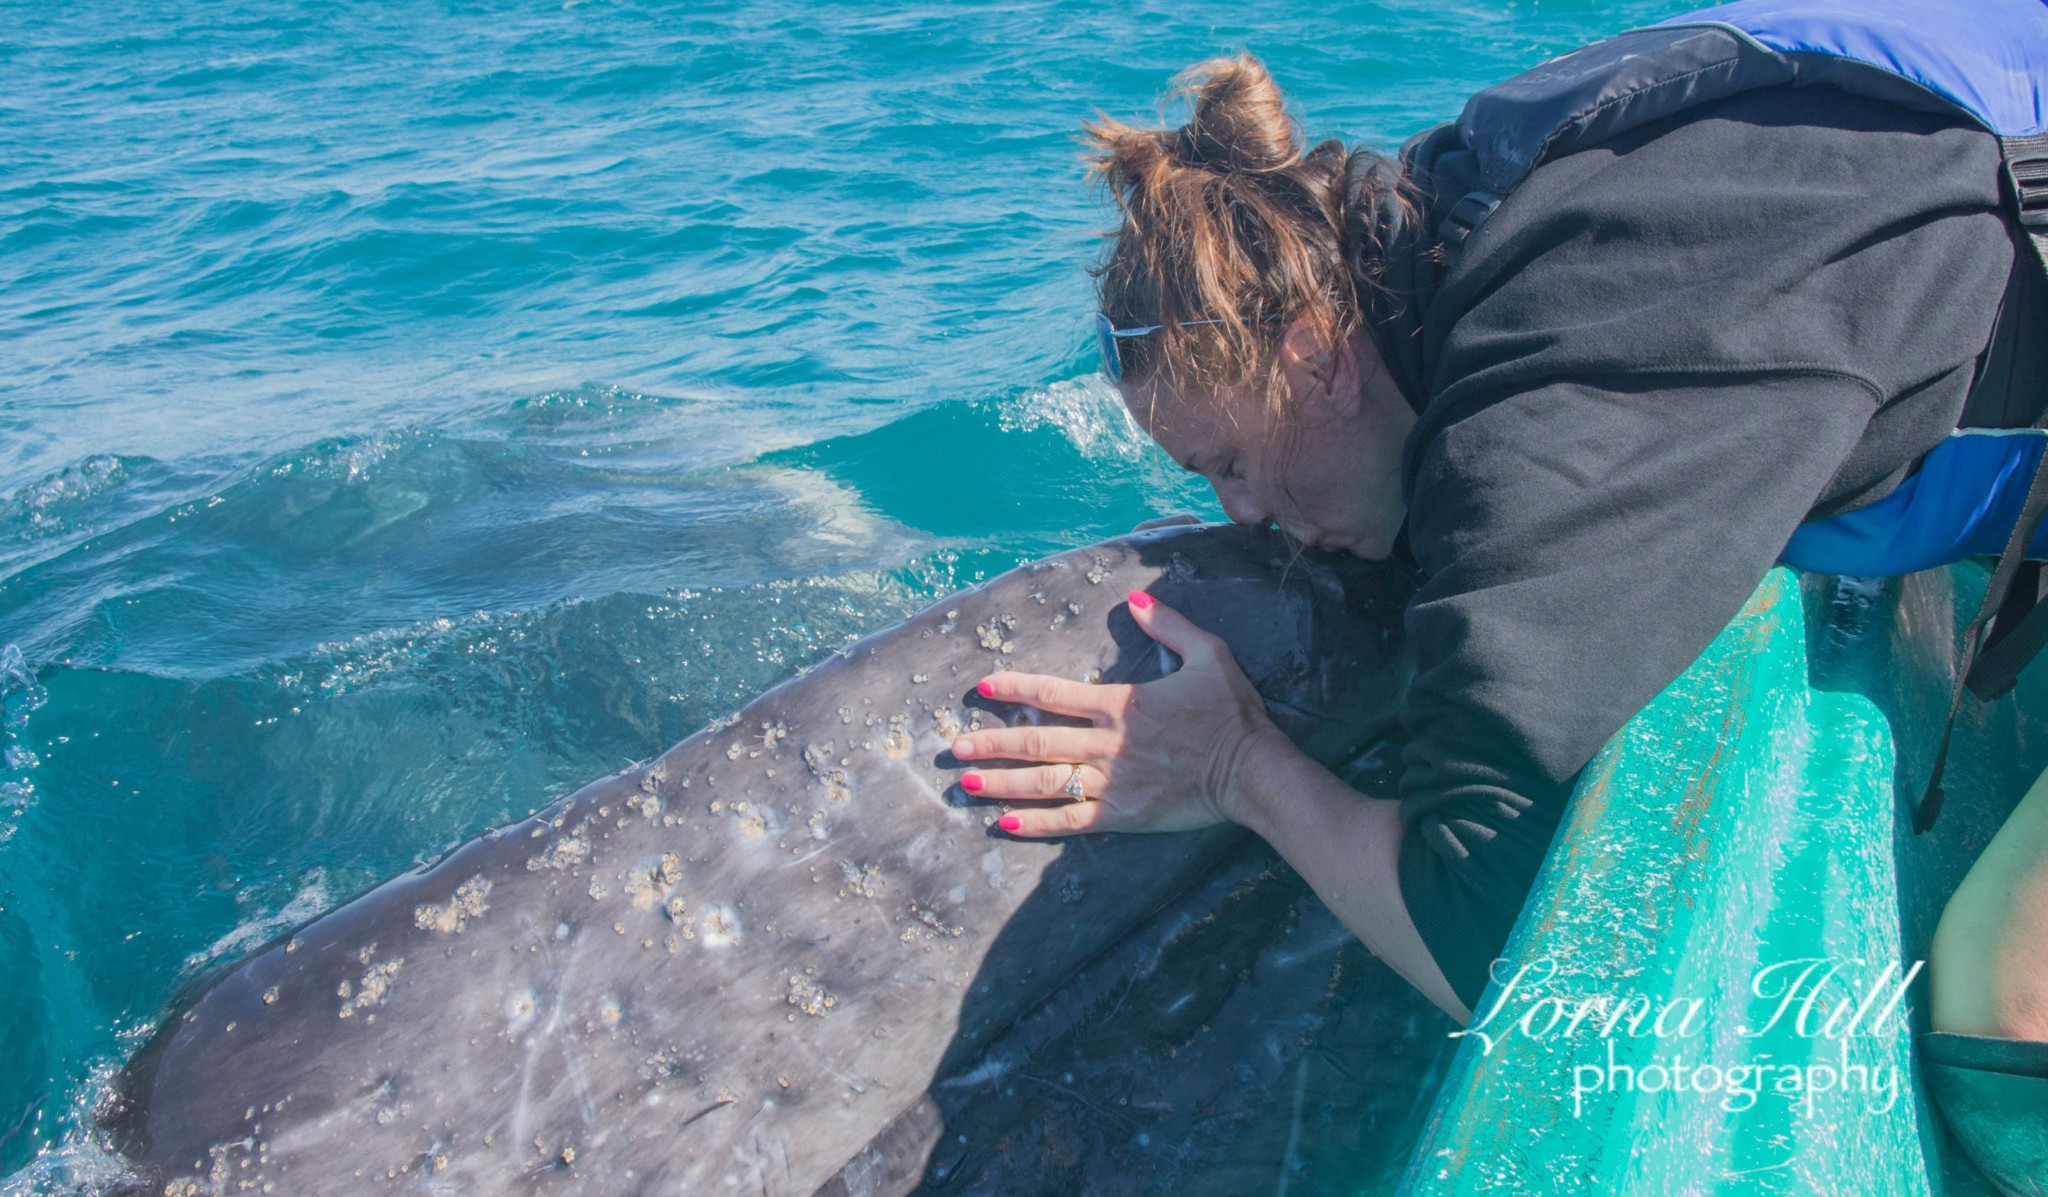 sue-with-both-hands-on-whale-plus-kissing-2